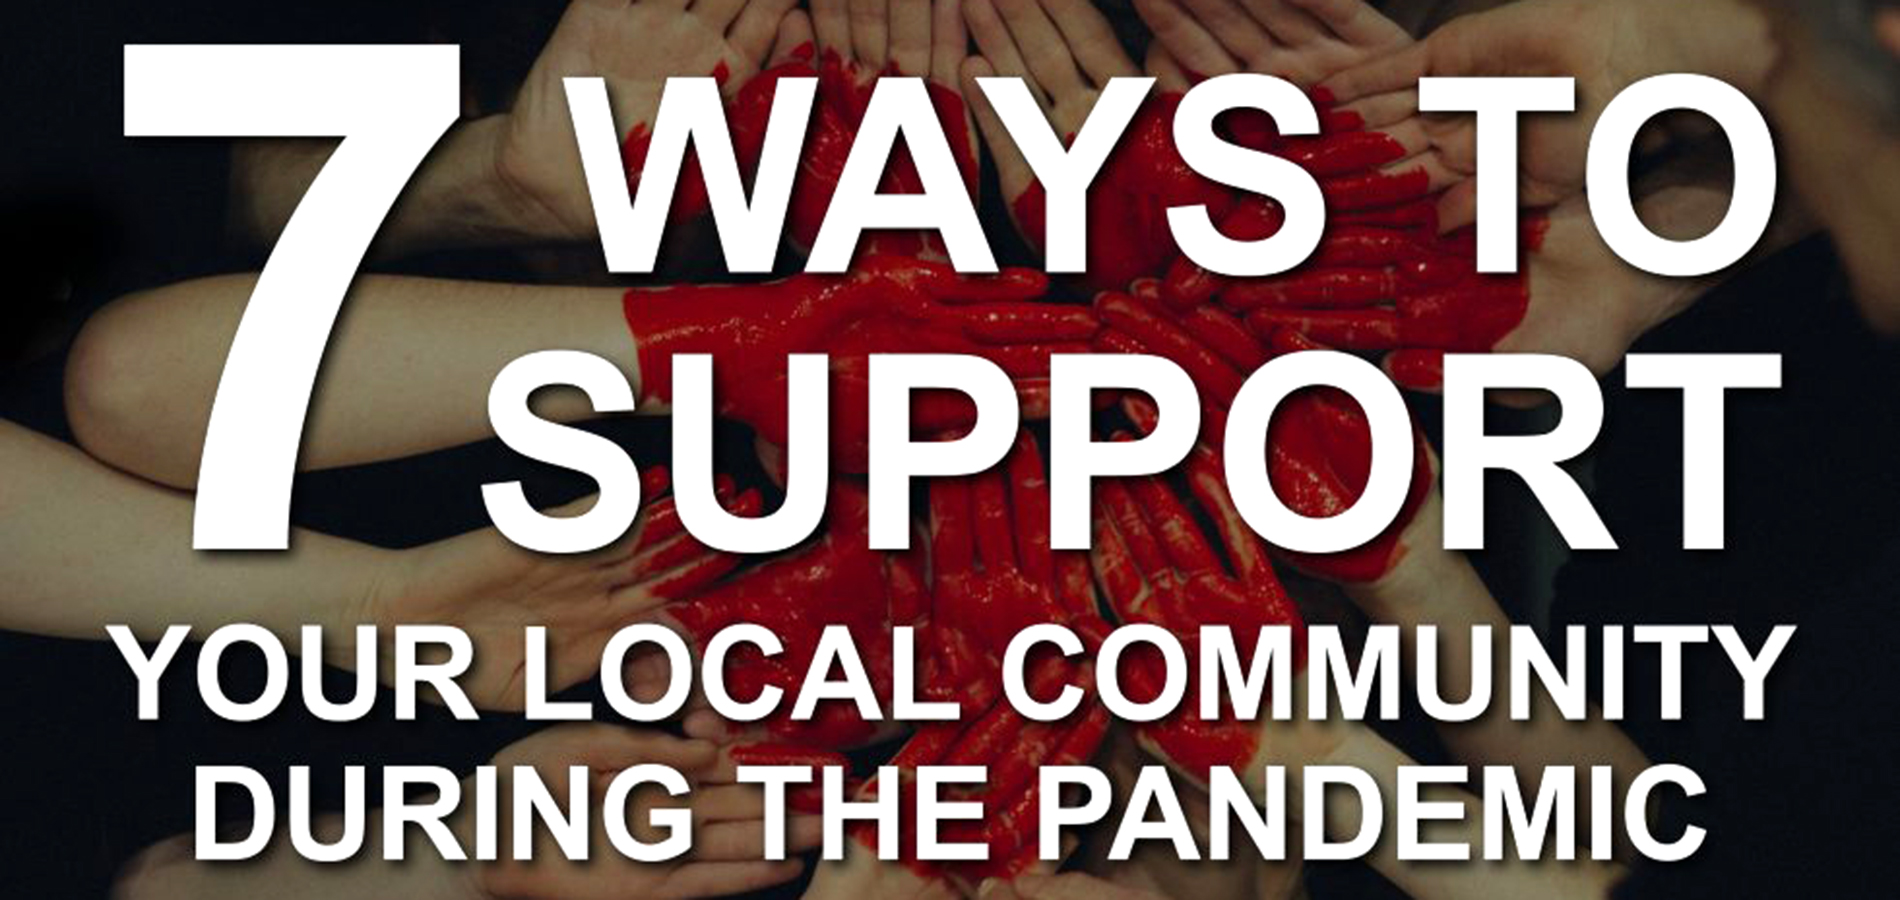 7-Ways-to-Support-Your-Local-Community By Advanced Wireless